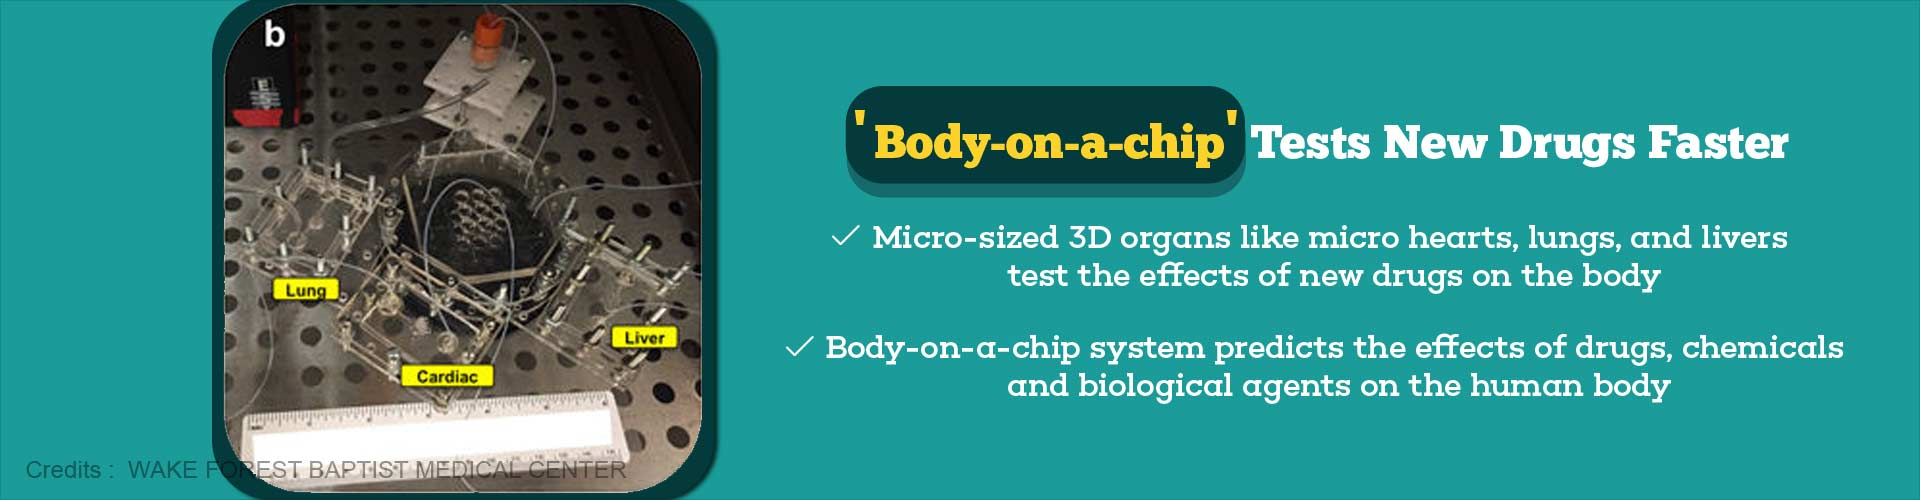 Body-on-a-chip Helps in Testing New Drugs Quickly